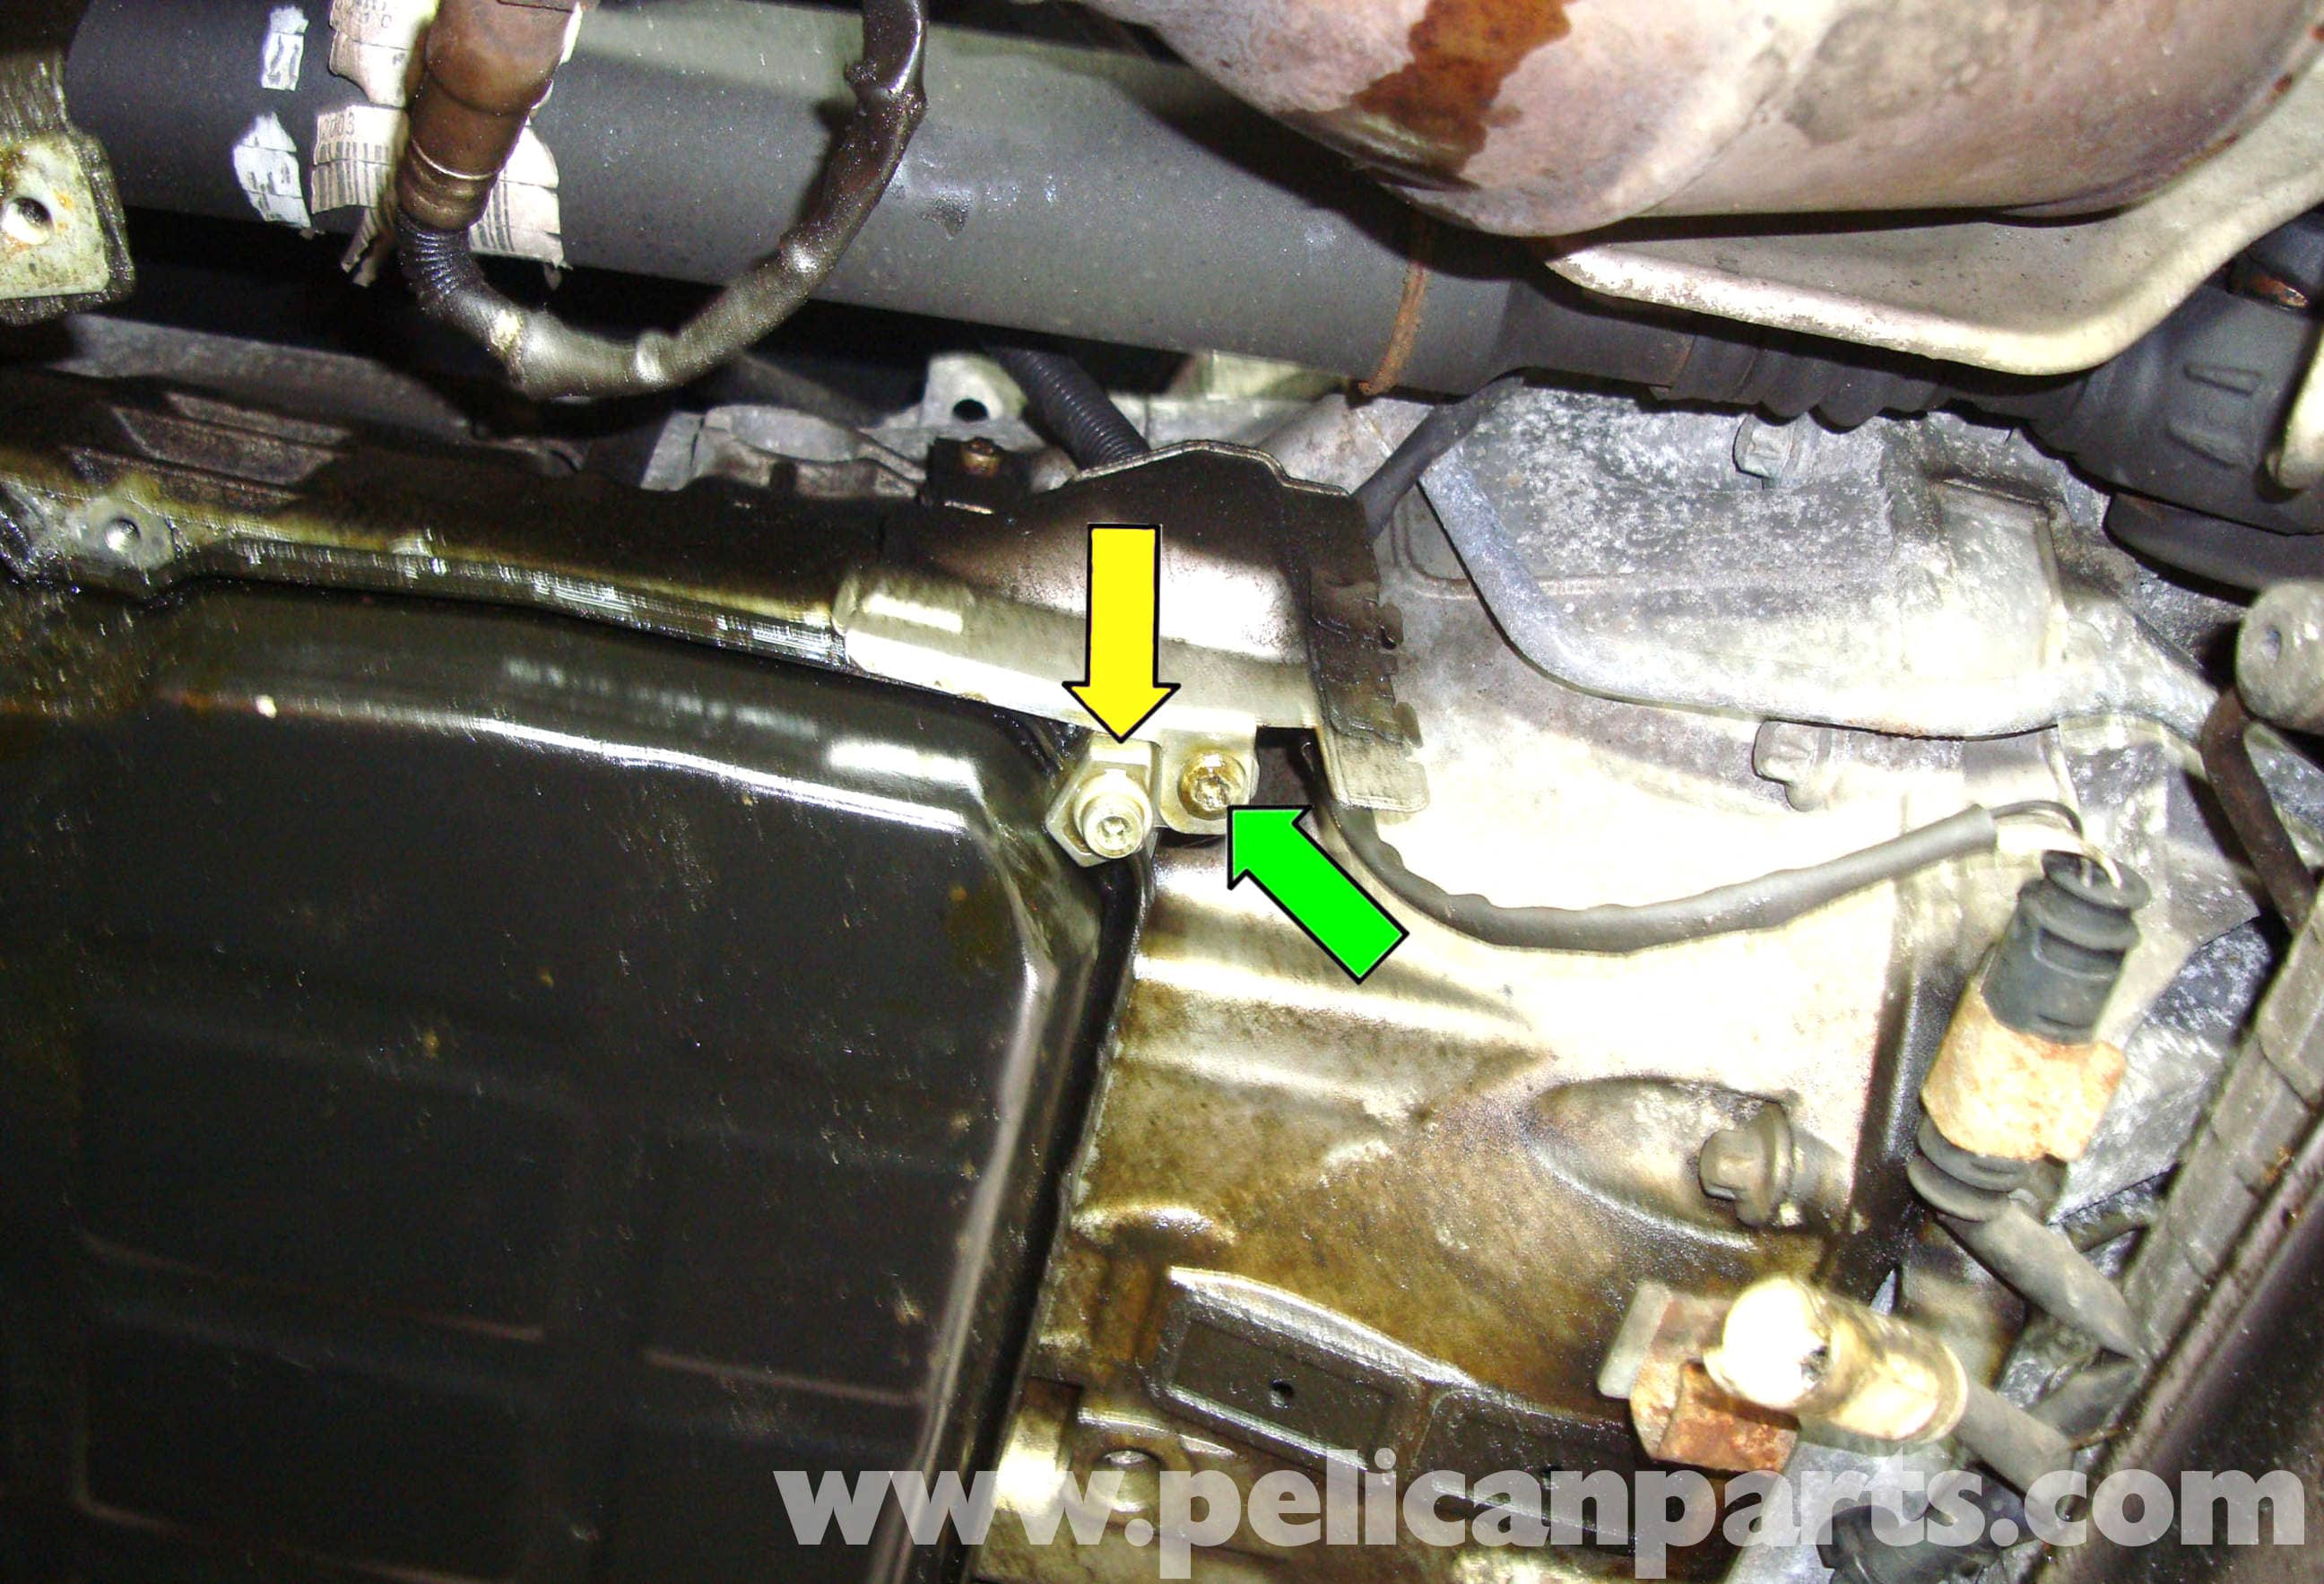 Mercedes-Benz W211 Automatic Transmission Fluid and Filter Change